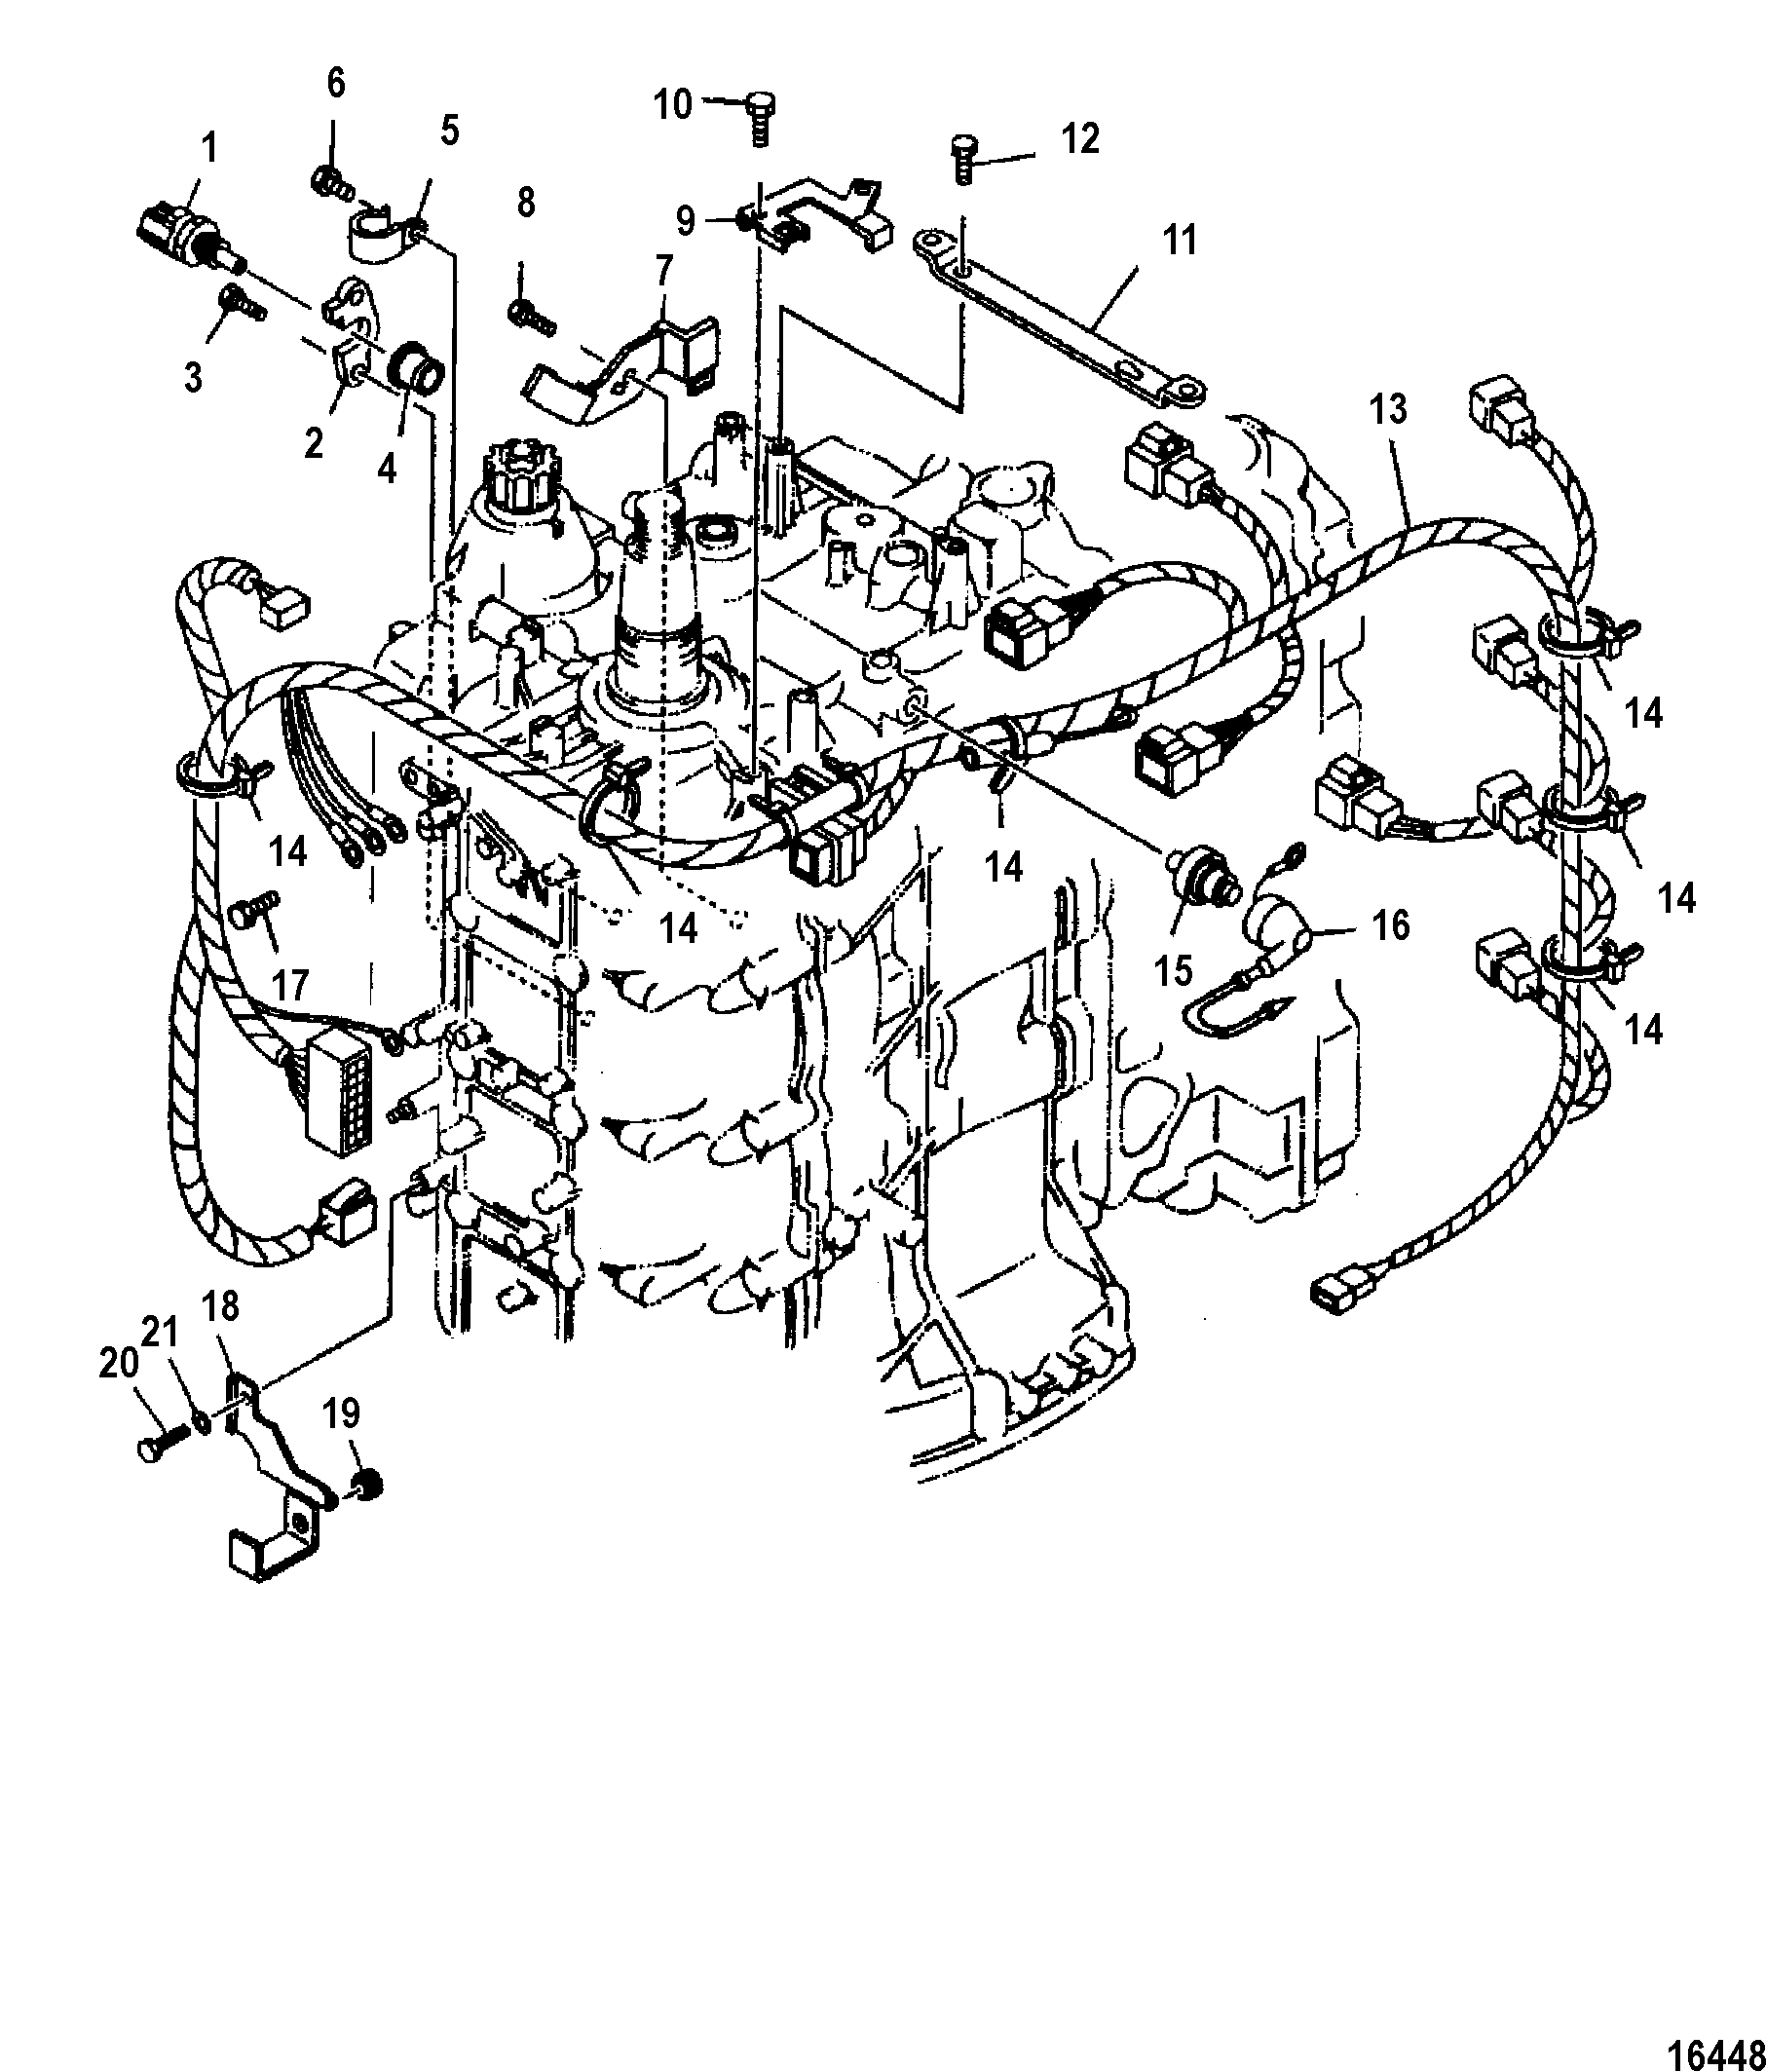 90 Hp Mercury 4 Stroke Efi Electrical Diagram